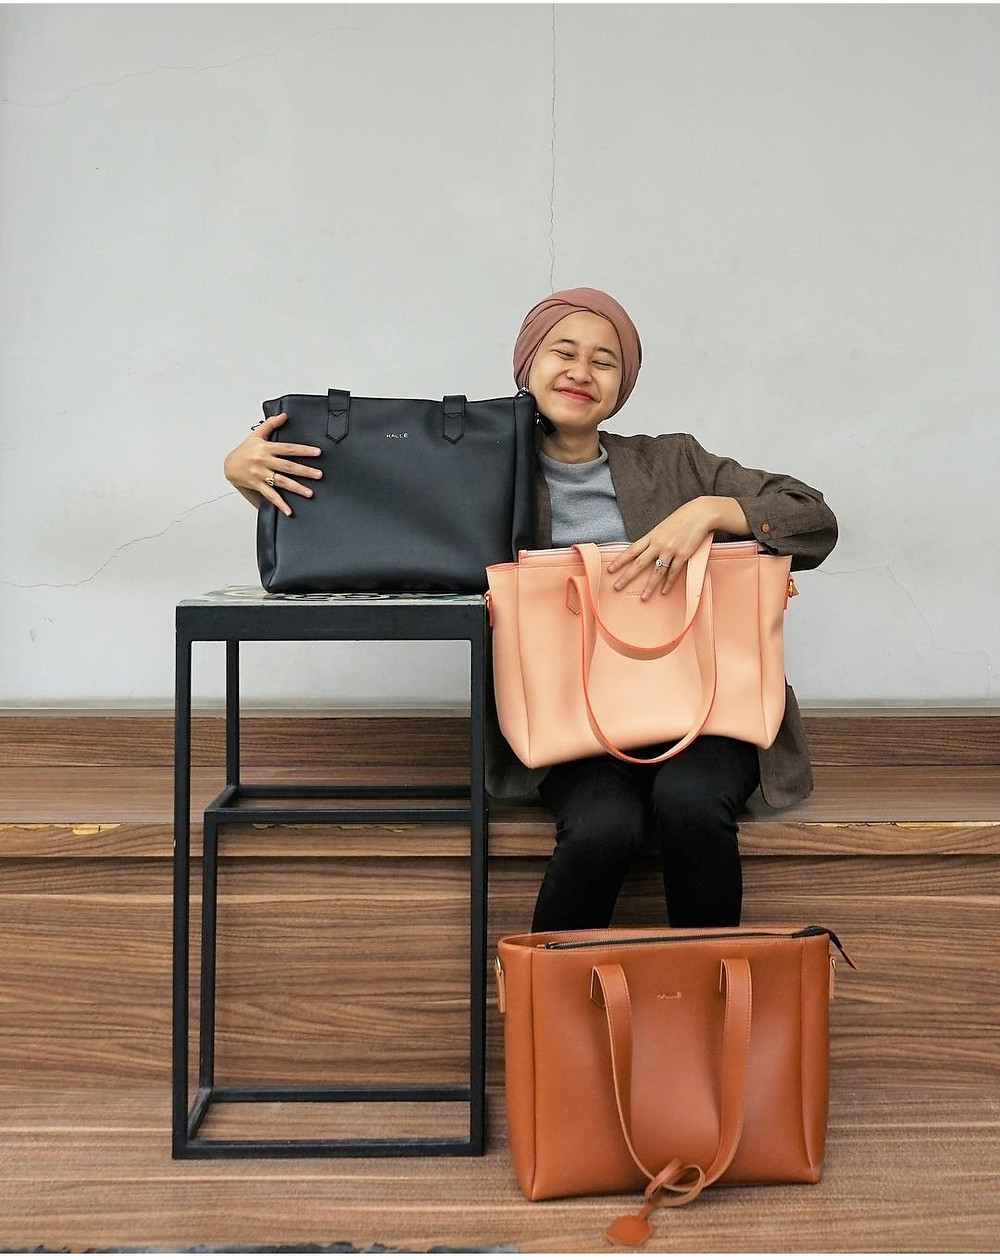 Malika Rizqia Anindita co-founder of Kalle with her Kalle bags. for Toastee Mag.